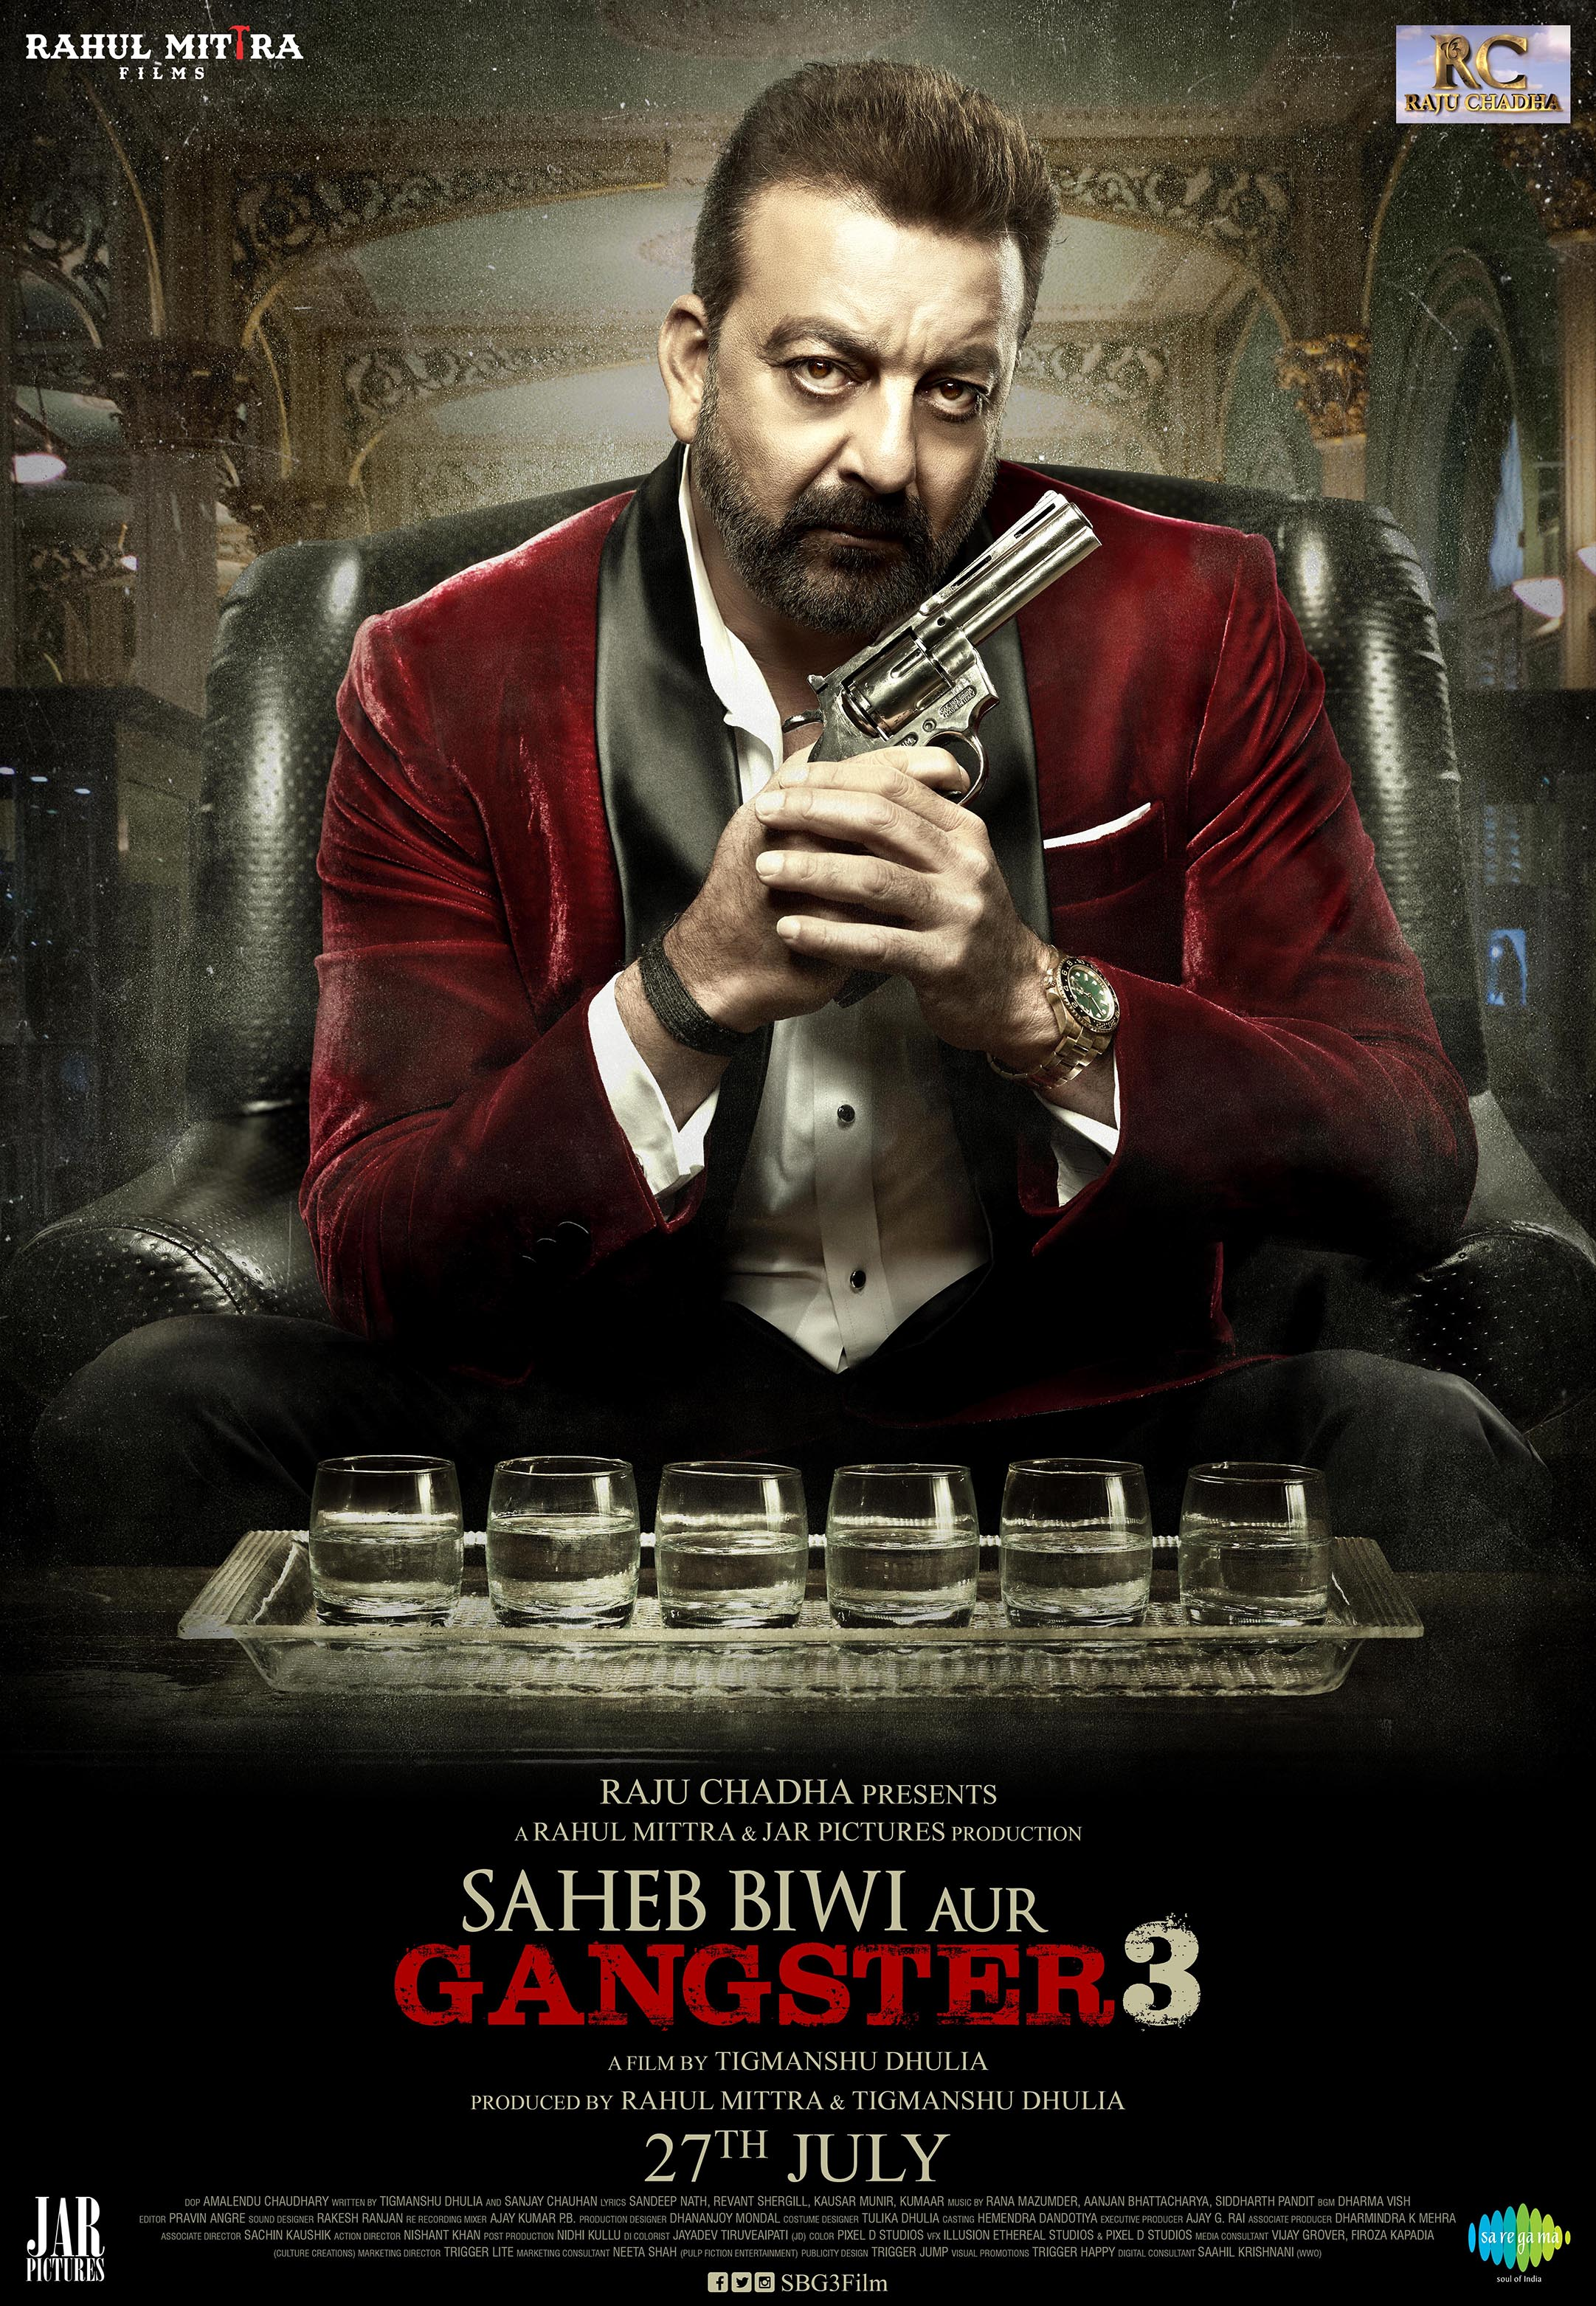 Sahib , Biwi Aur Gangster 3 By Box Office Events !!